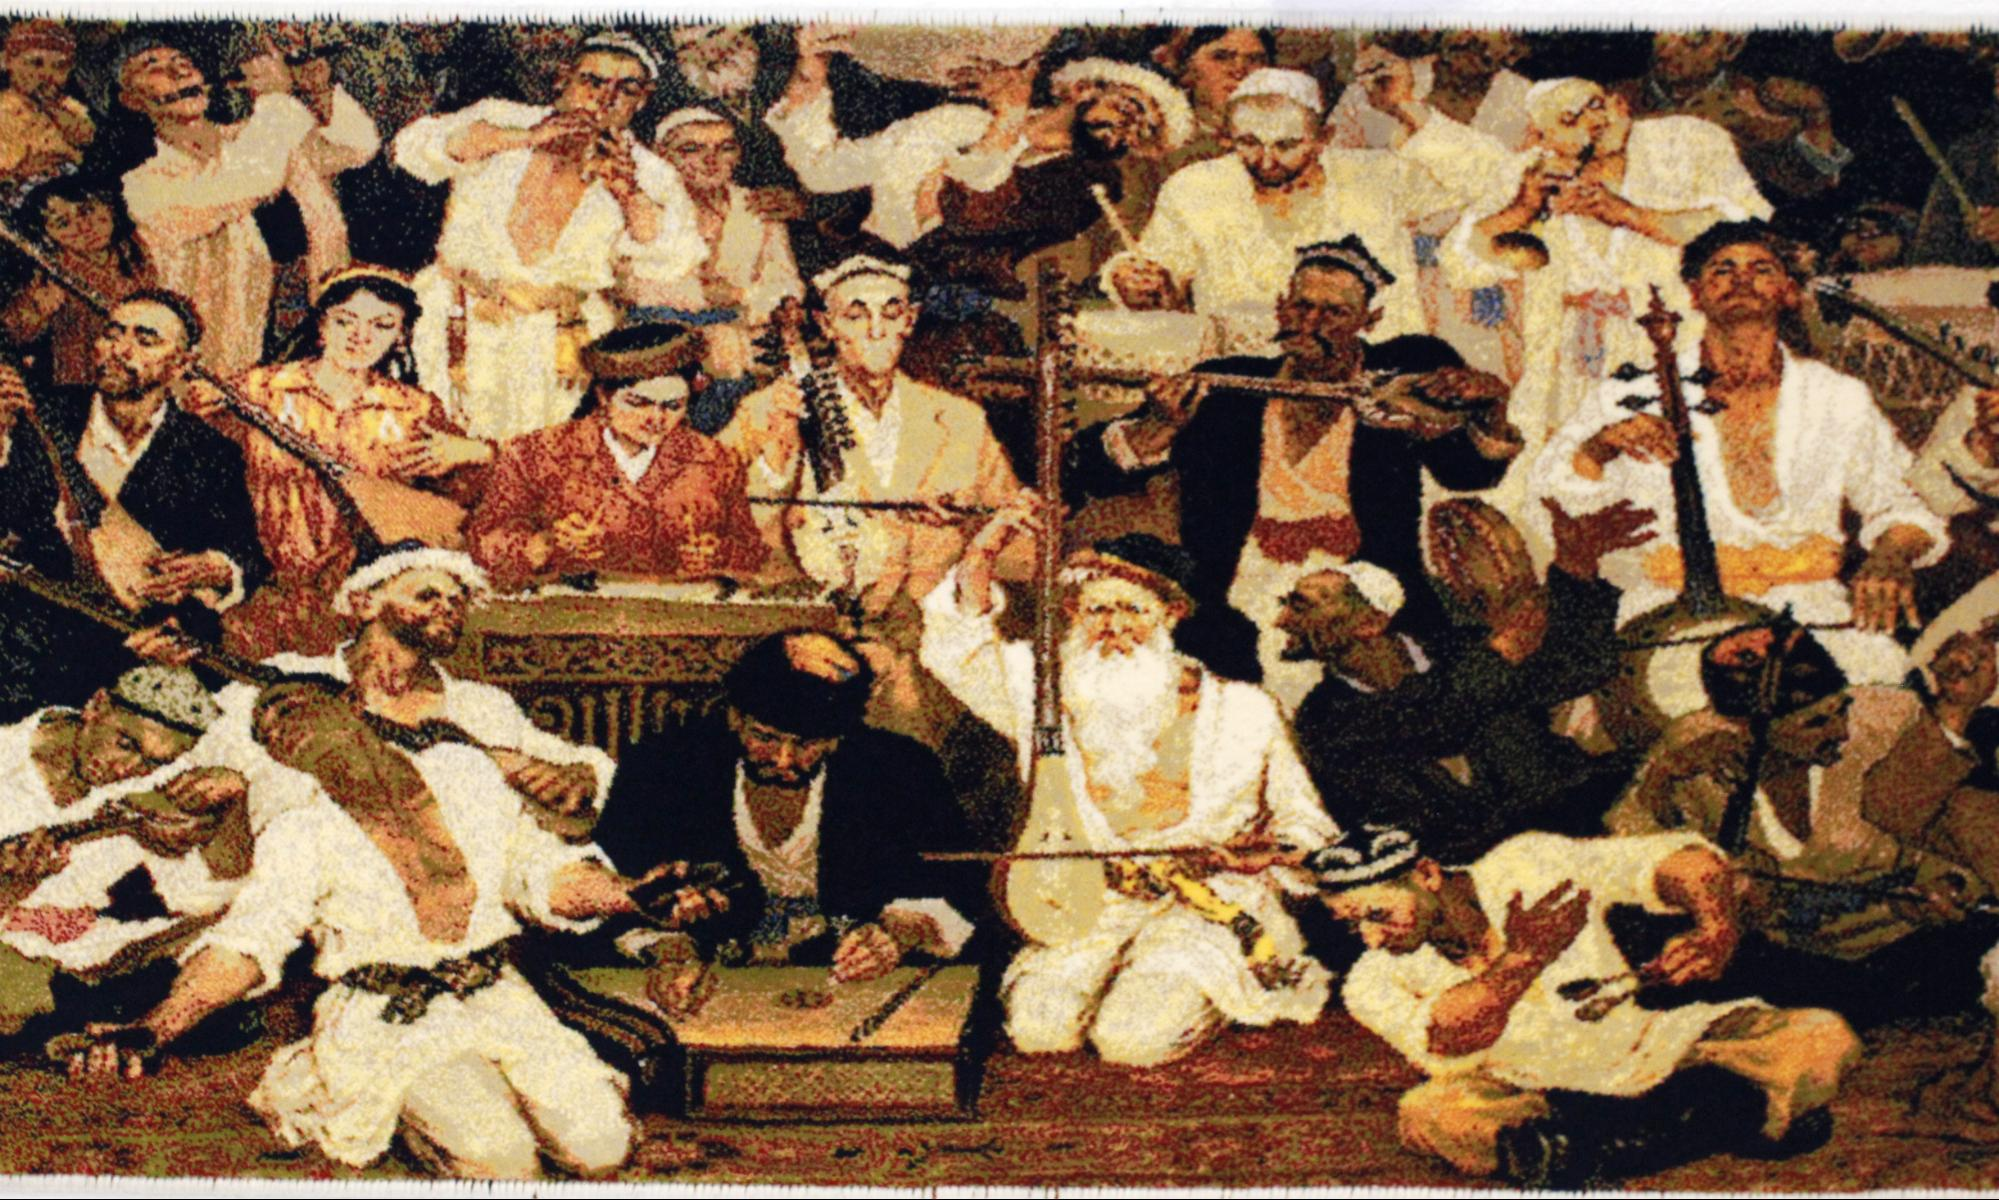 Uyghur oil painting